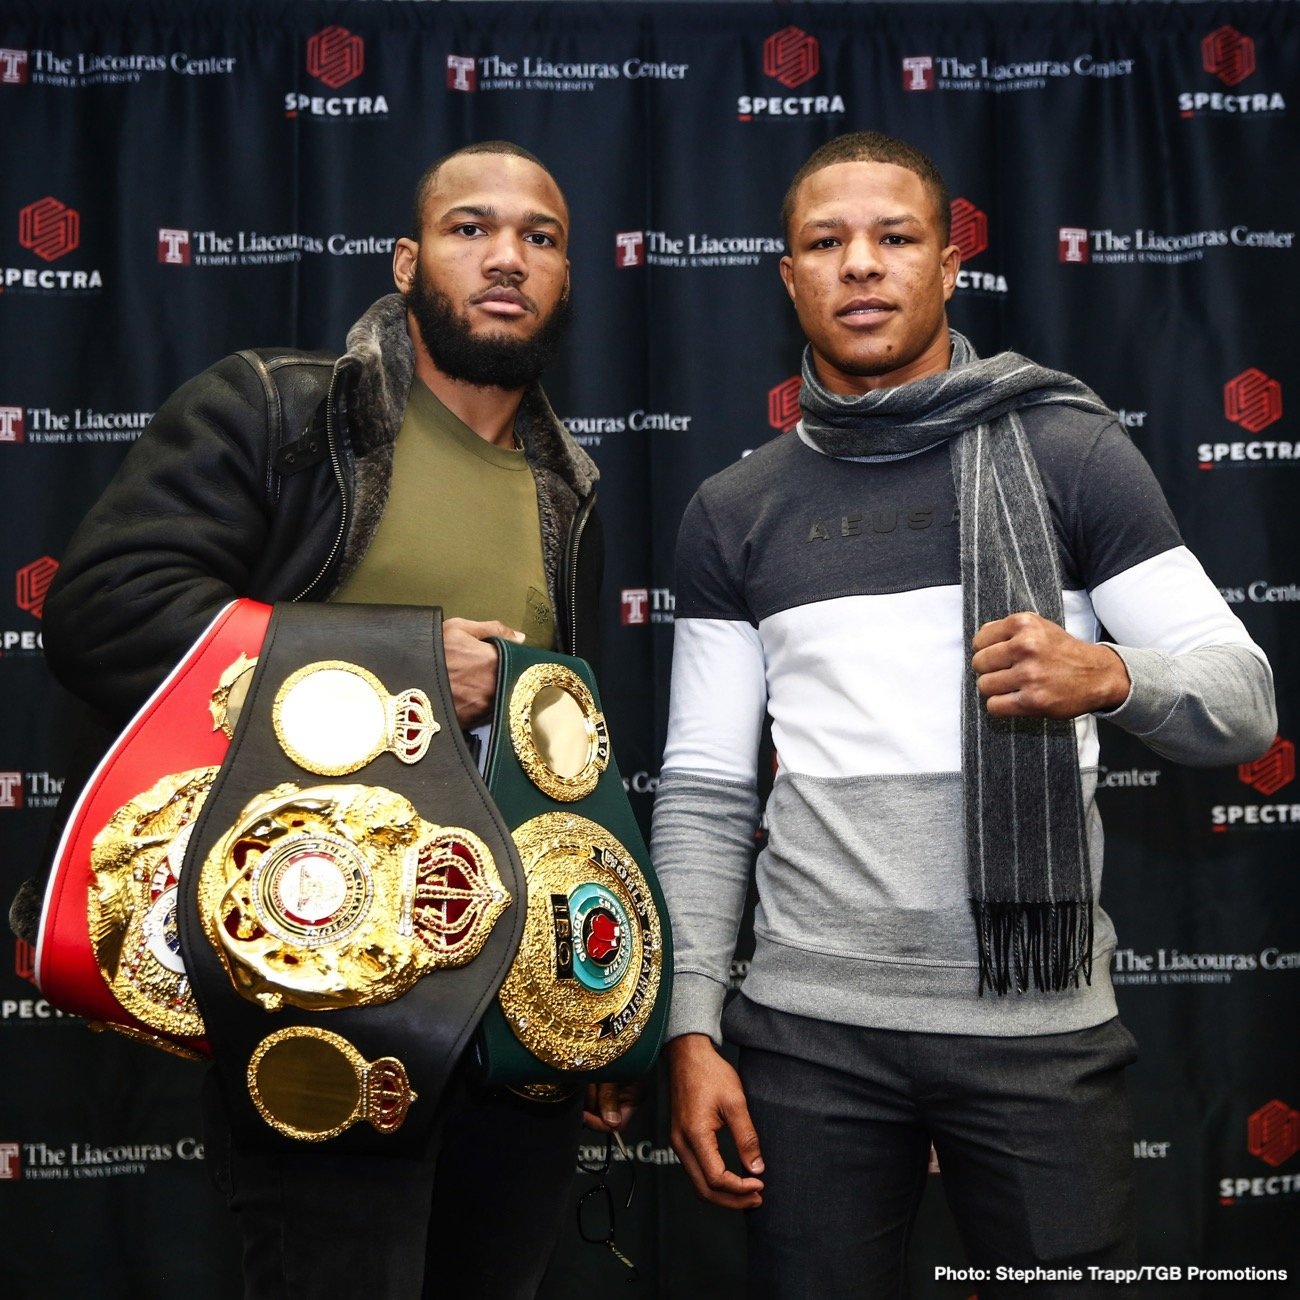 Julian Williams - Top super welterweight prospect Joey Spencer will enter the ring to take on Erik Spring in a six-round showdown that opens up the FOX PBC Fight Night broadcast and on FOX Deportes Saturday, January 18 from Temple University's Liacouras Center in Philadelphia.